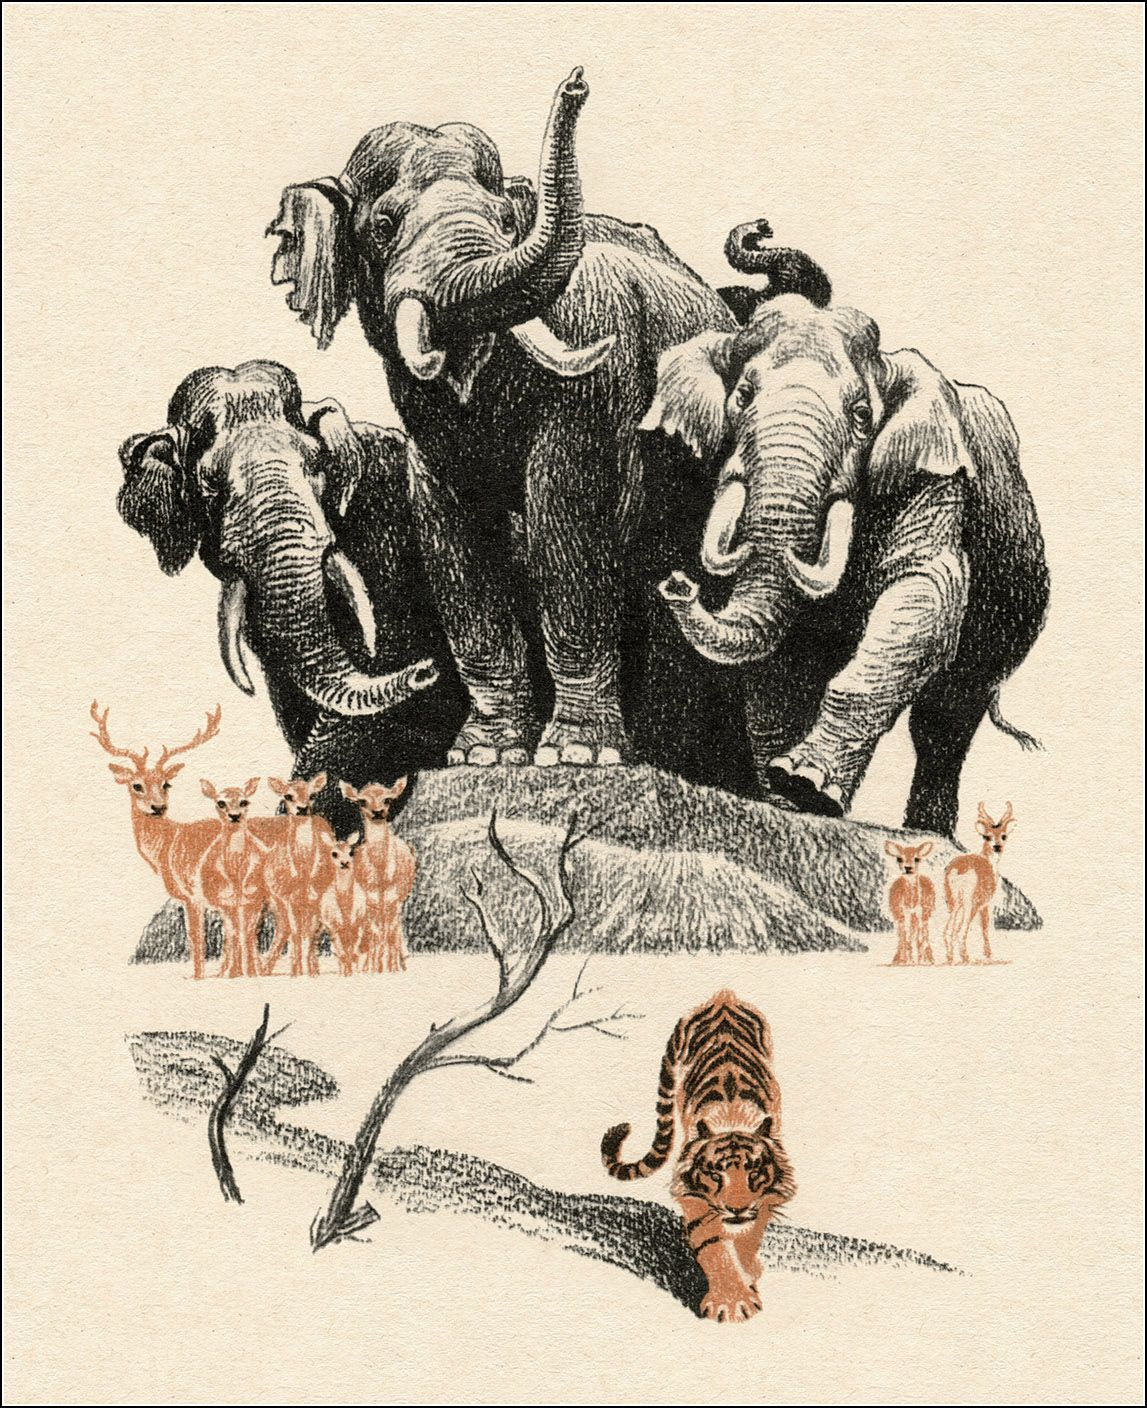 the jungle book written by rudyard kipling illustrated by the jungle book by rudyard kipling mowgli illustrator sergey artyushenko 1986